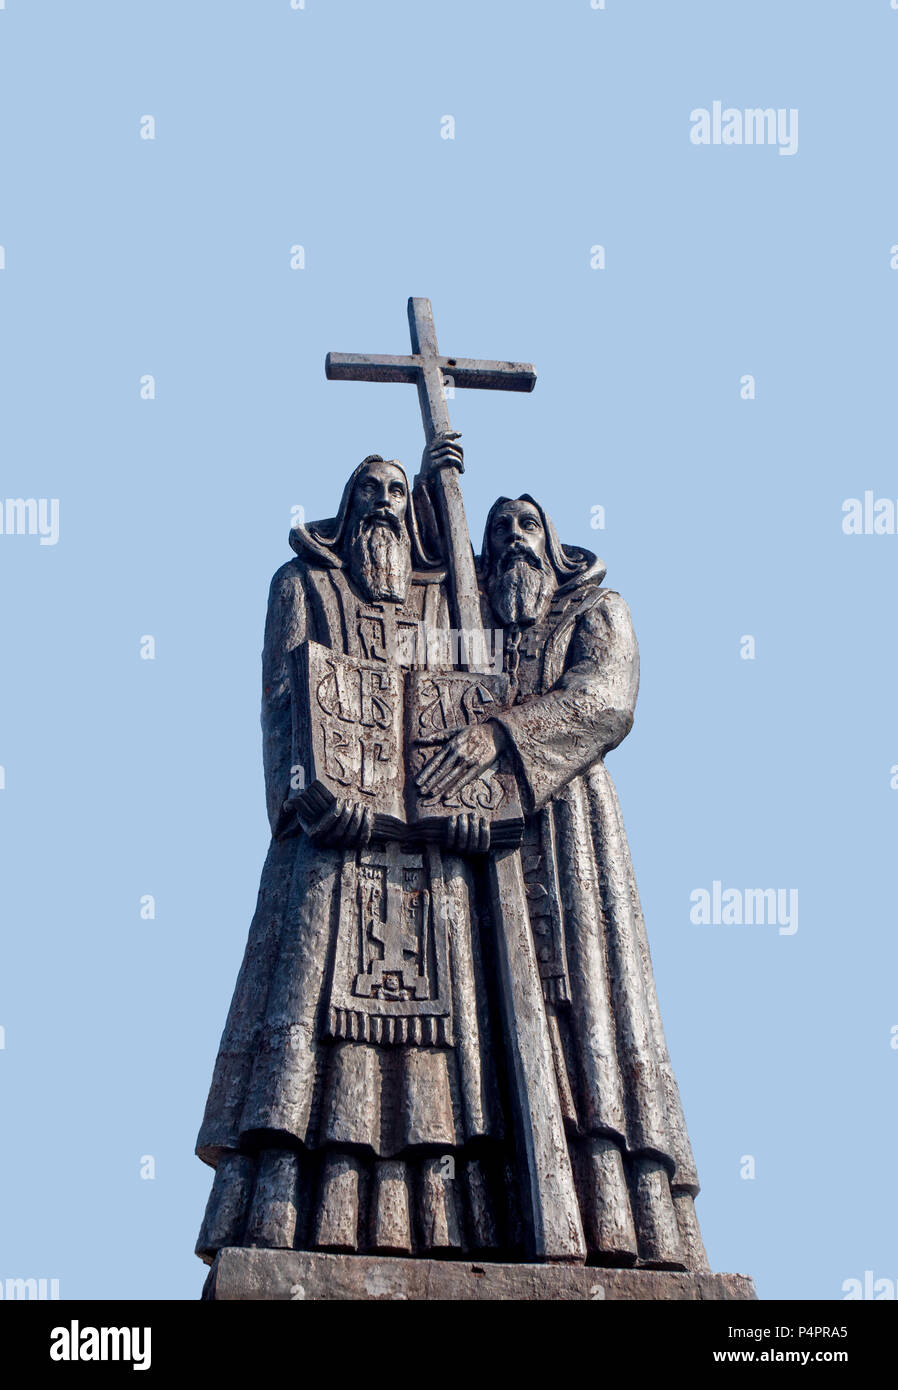 Monument to St. Cyril and St. Methodius in Russia, Vladivostok. They are credited with devising the Glagolitic alphabet. Isolated view. - Stock Image